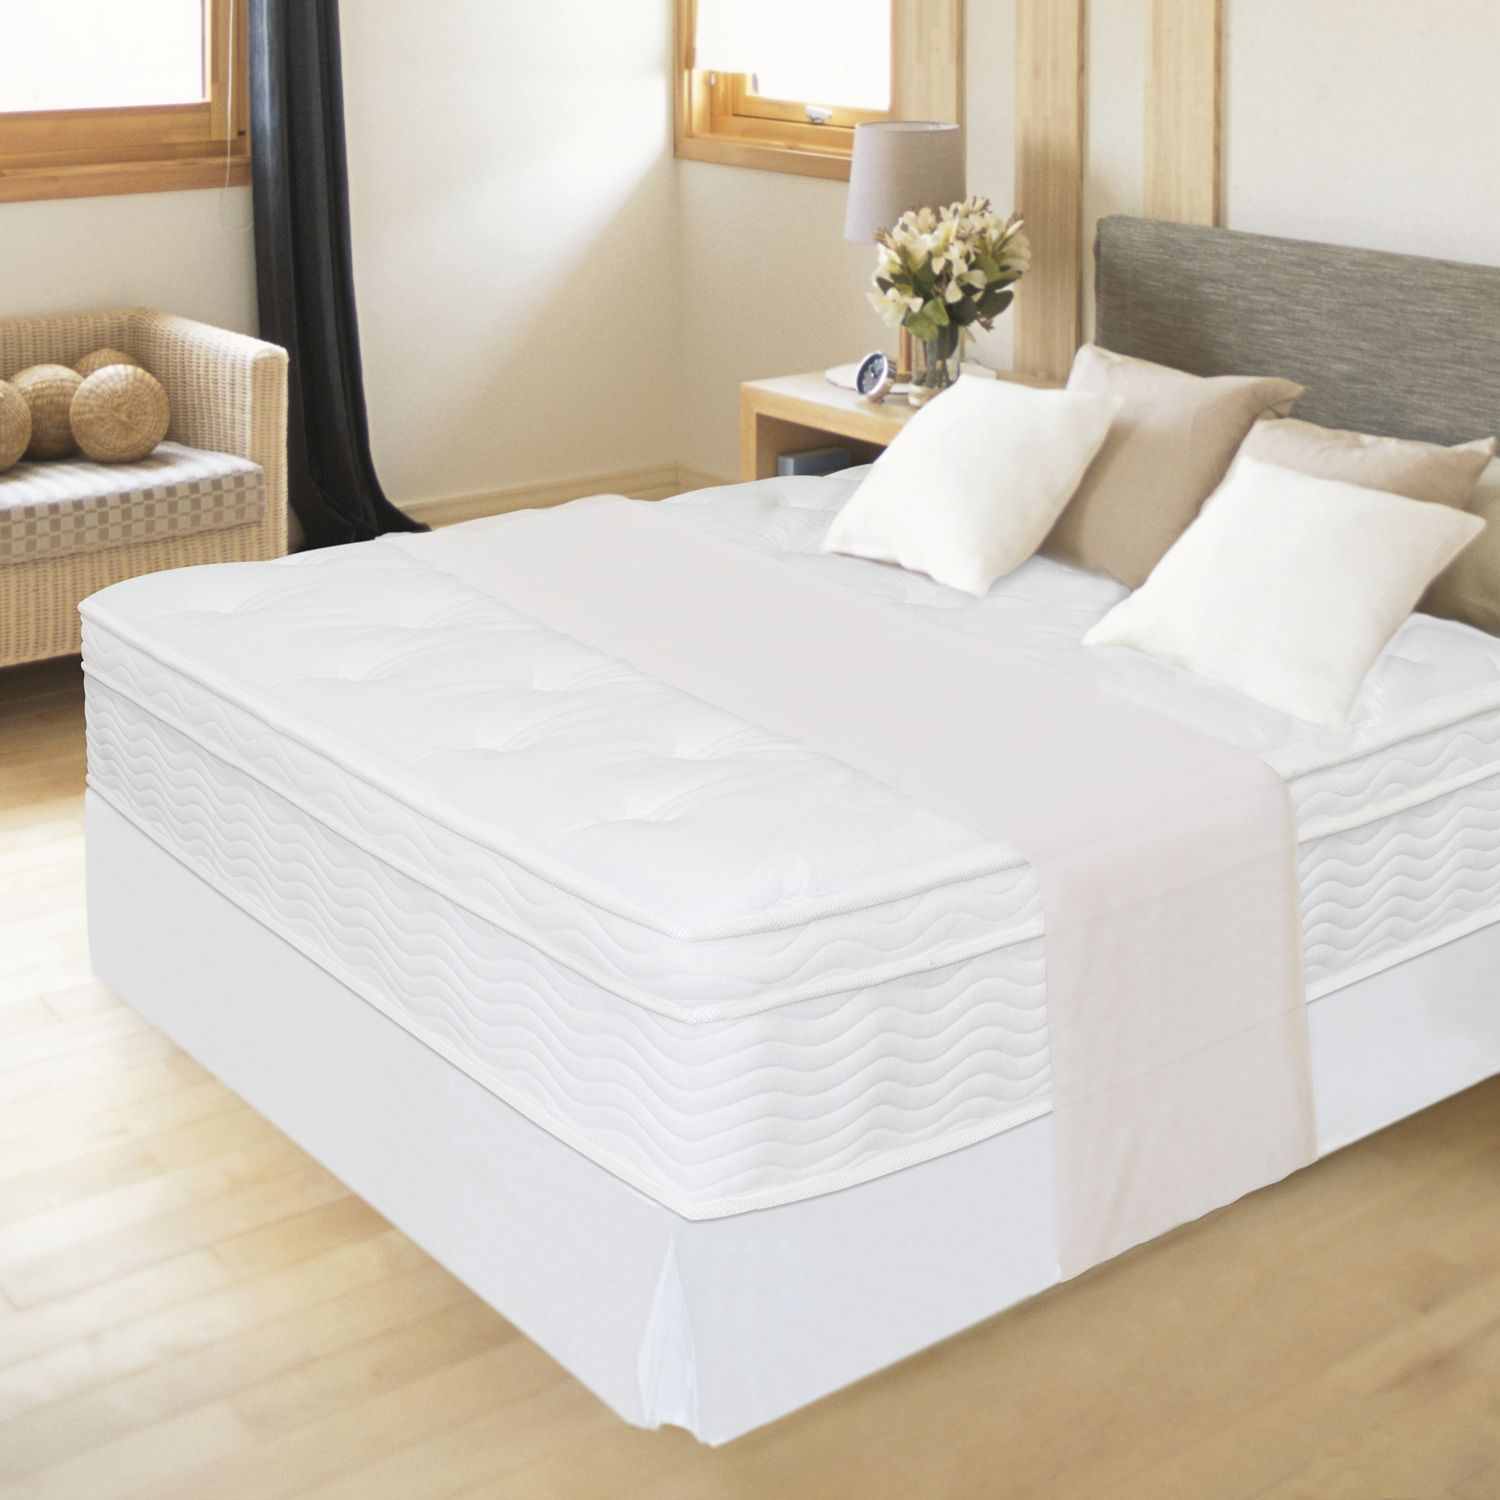 12 Night Therapy Euro Box Top Spring Mattress Bed Frame Set King Sam S Club Bed Frame Sets Bed Frame Mattress Bed Frame